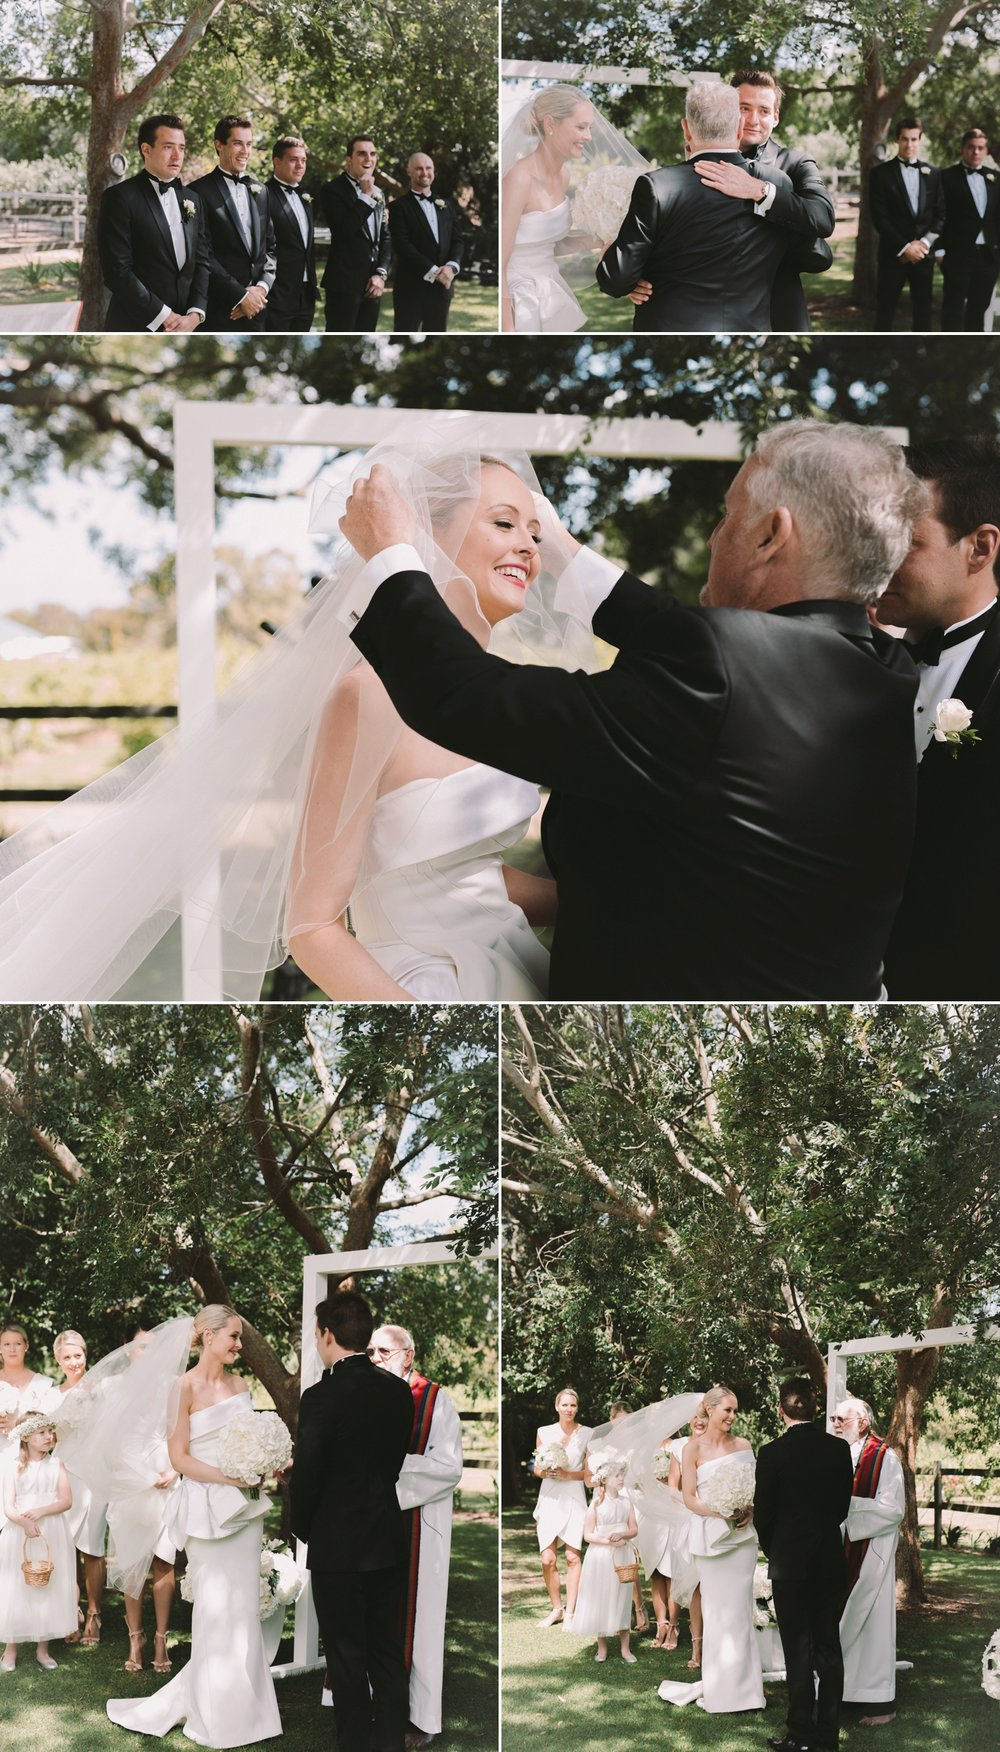 Bec & Brad - Waverley Estate Wedding - Natural Wedding Photographer in Adelaide - www.katherineschultzphotography.com 32